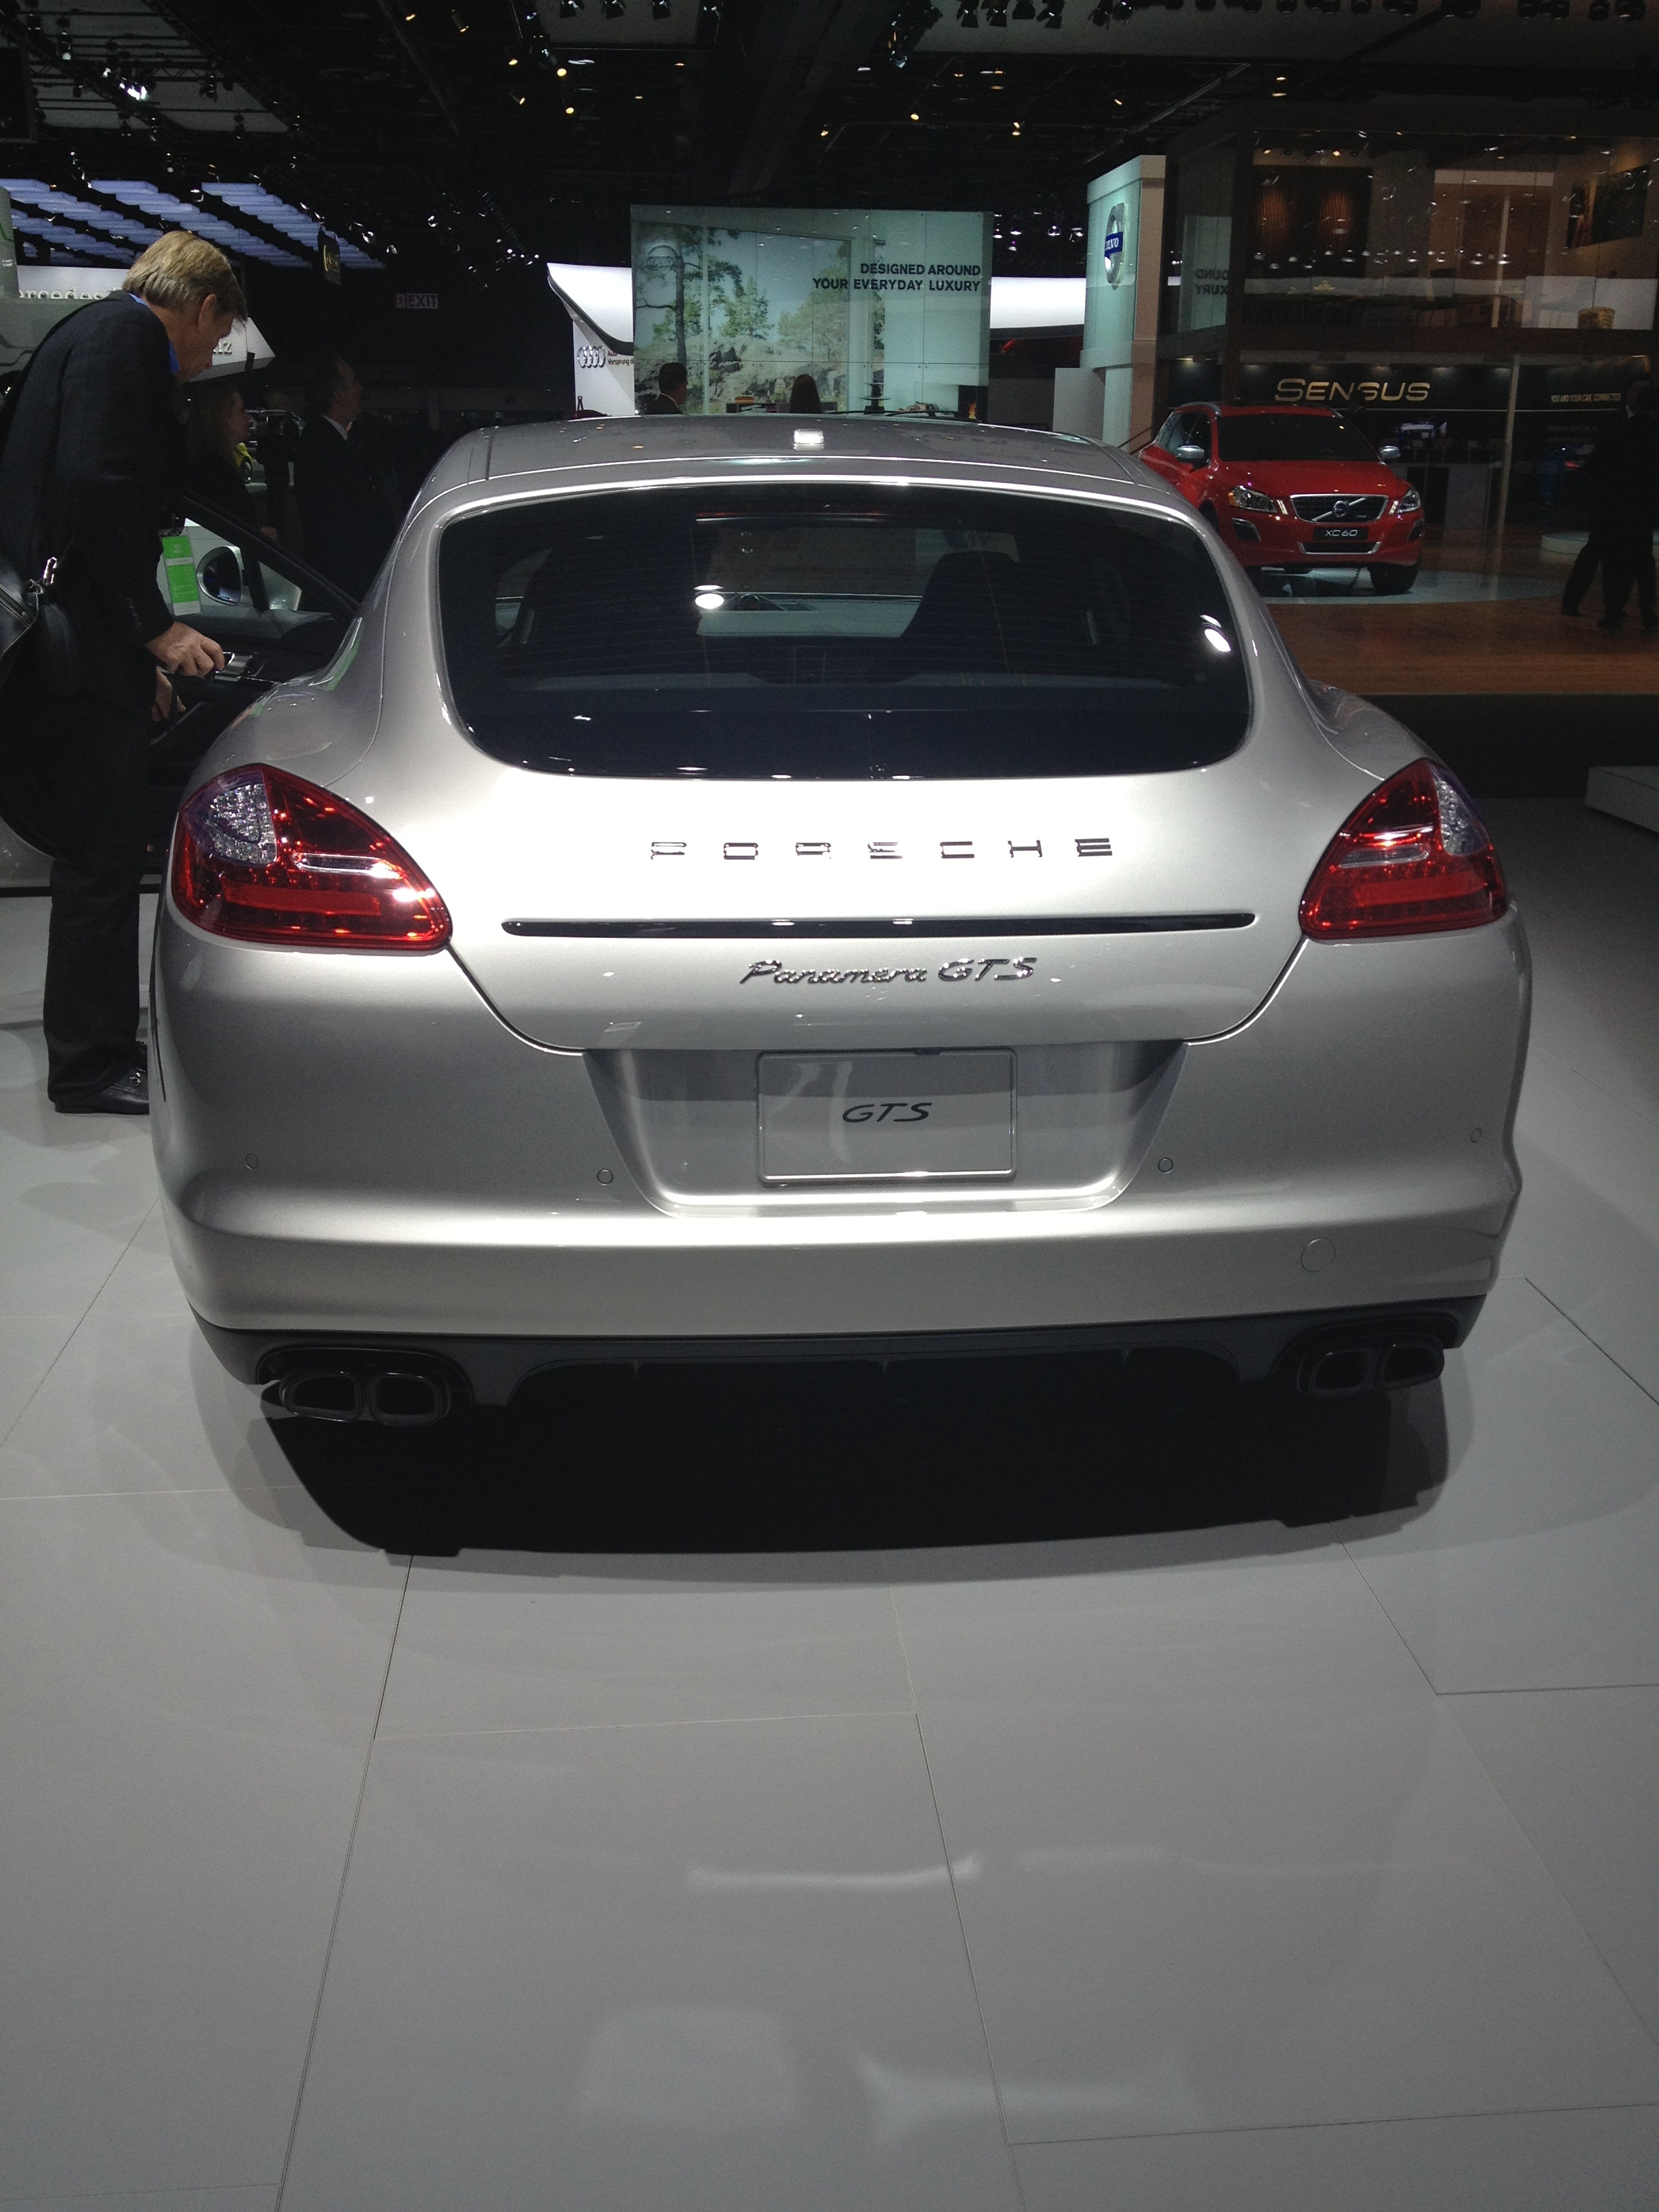 2013-porsche-panamera-gts-at-naias-2013-by-sarahlarson